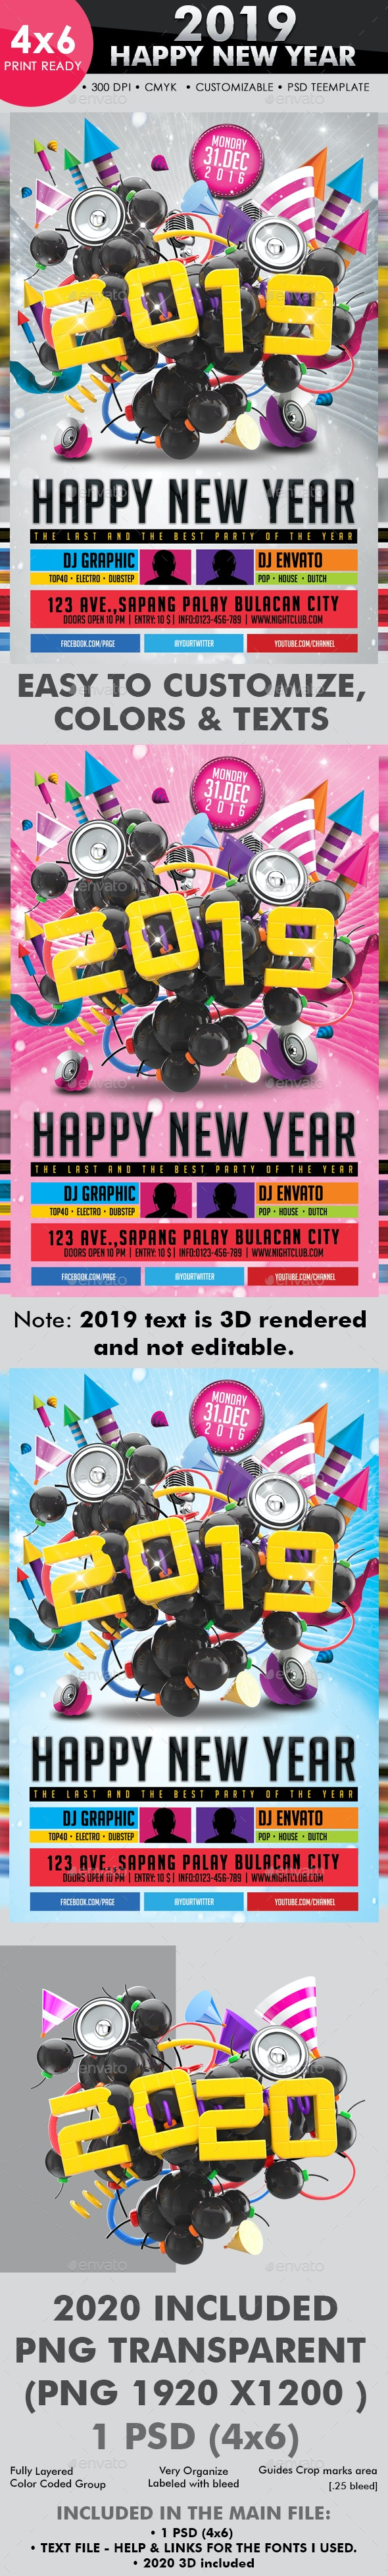 2019 Happy New Year Flyer Template - Clubs & Parties Events